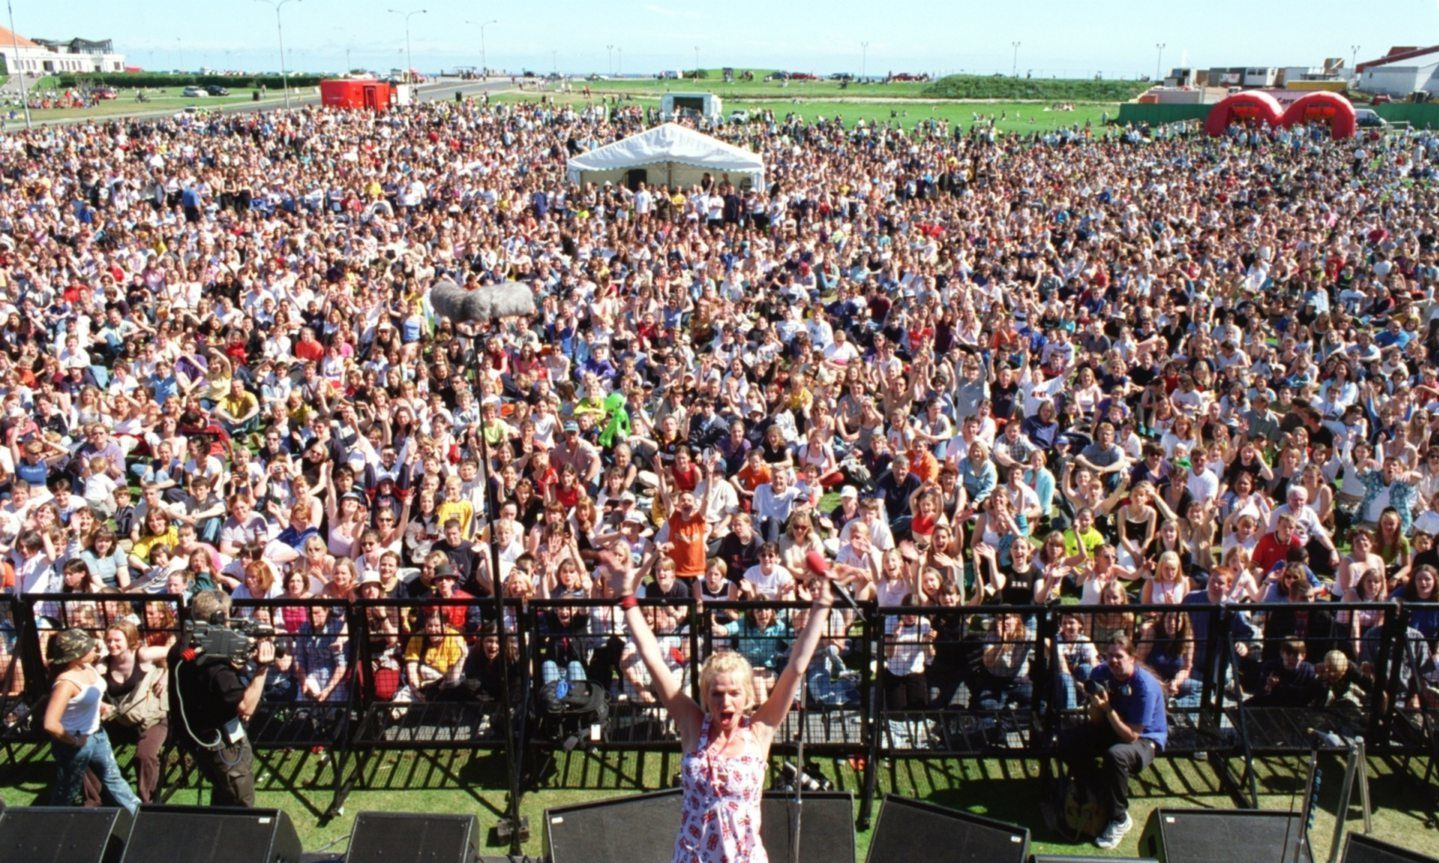 Aberdeen screamed its way across the airwaves when Radio 1's golden girl Zoe Ball kicked off the summer roadshow at the Beach in July 1999. Around 10,000 noisy punters lapped up the bubbly DJ's every word and wave.